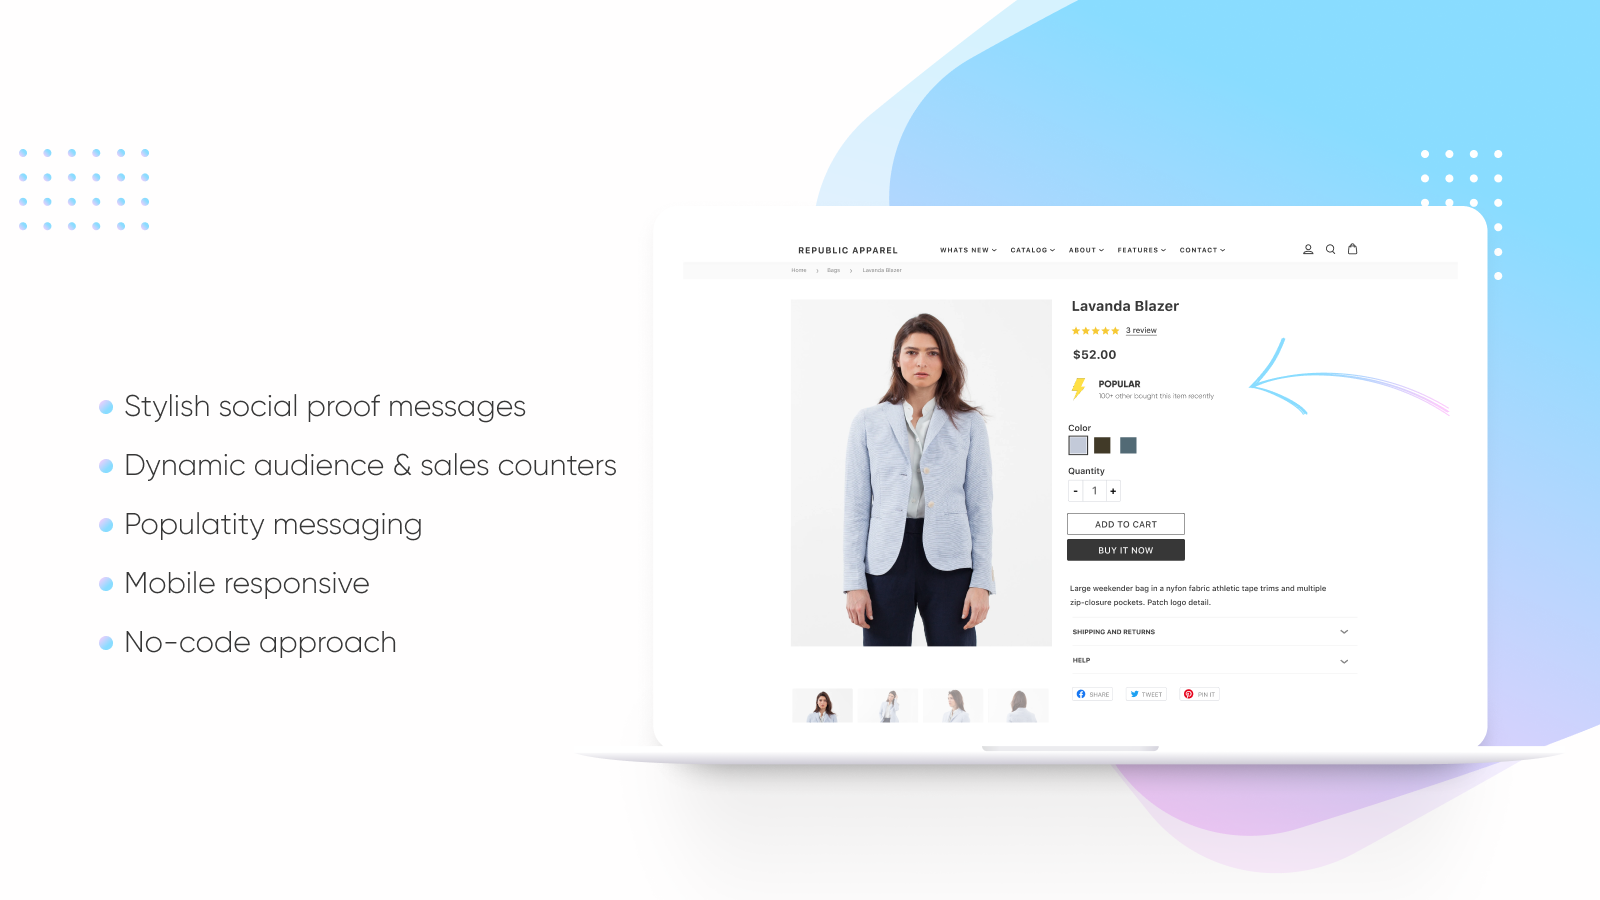 Display social proof messaging on product details